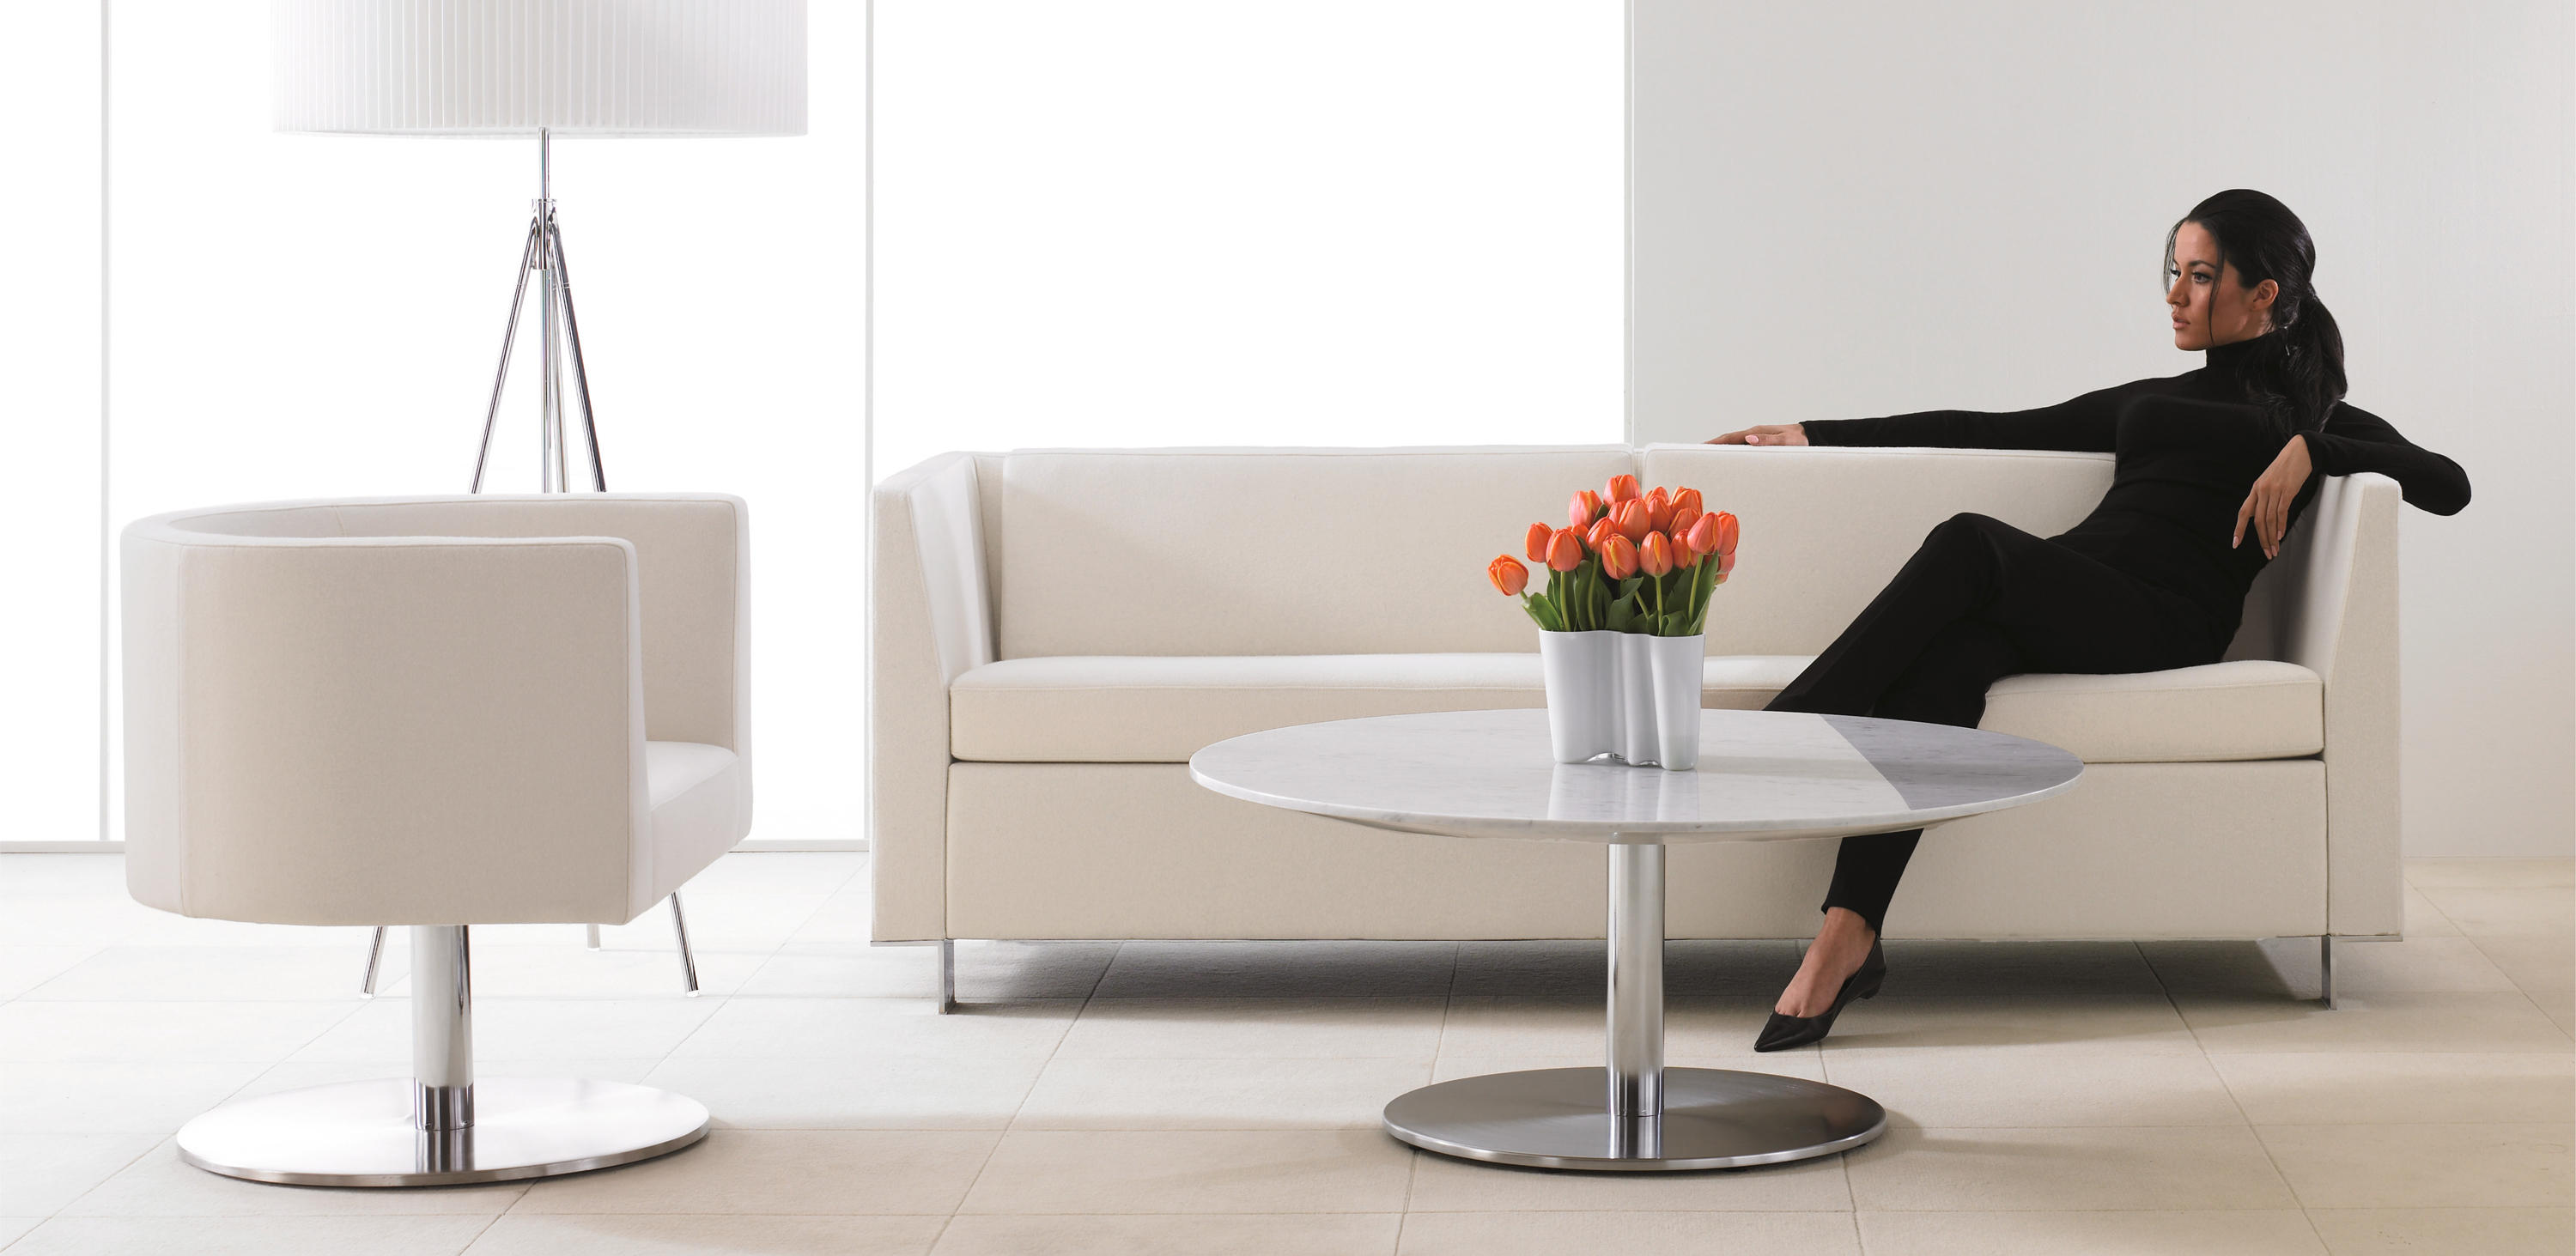 VIGNETTE - Armchairs From Teknion